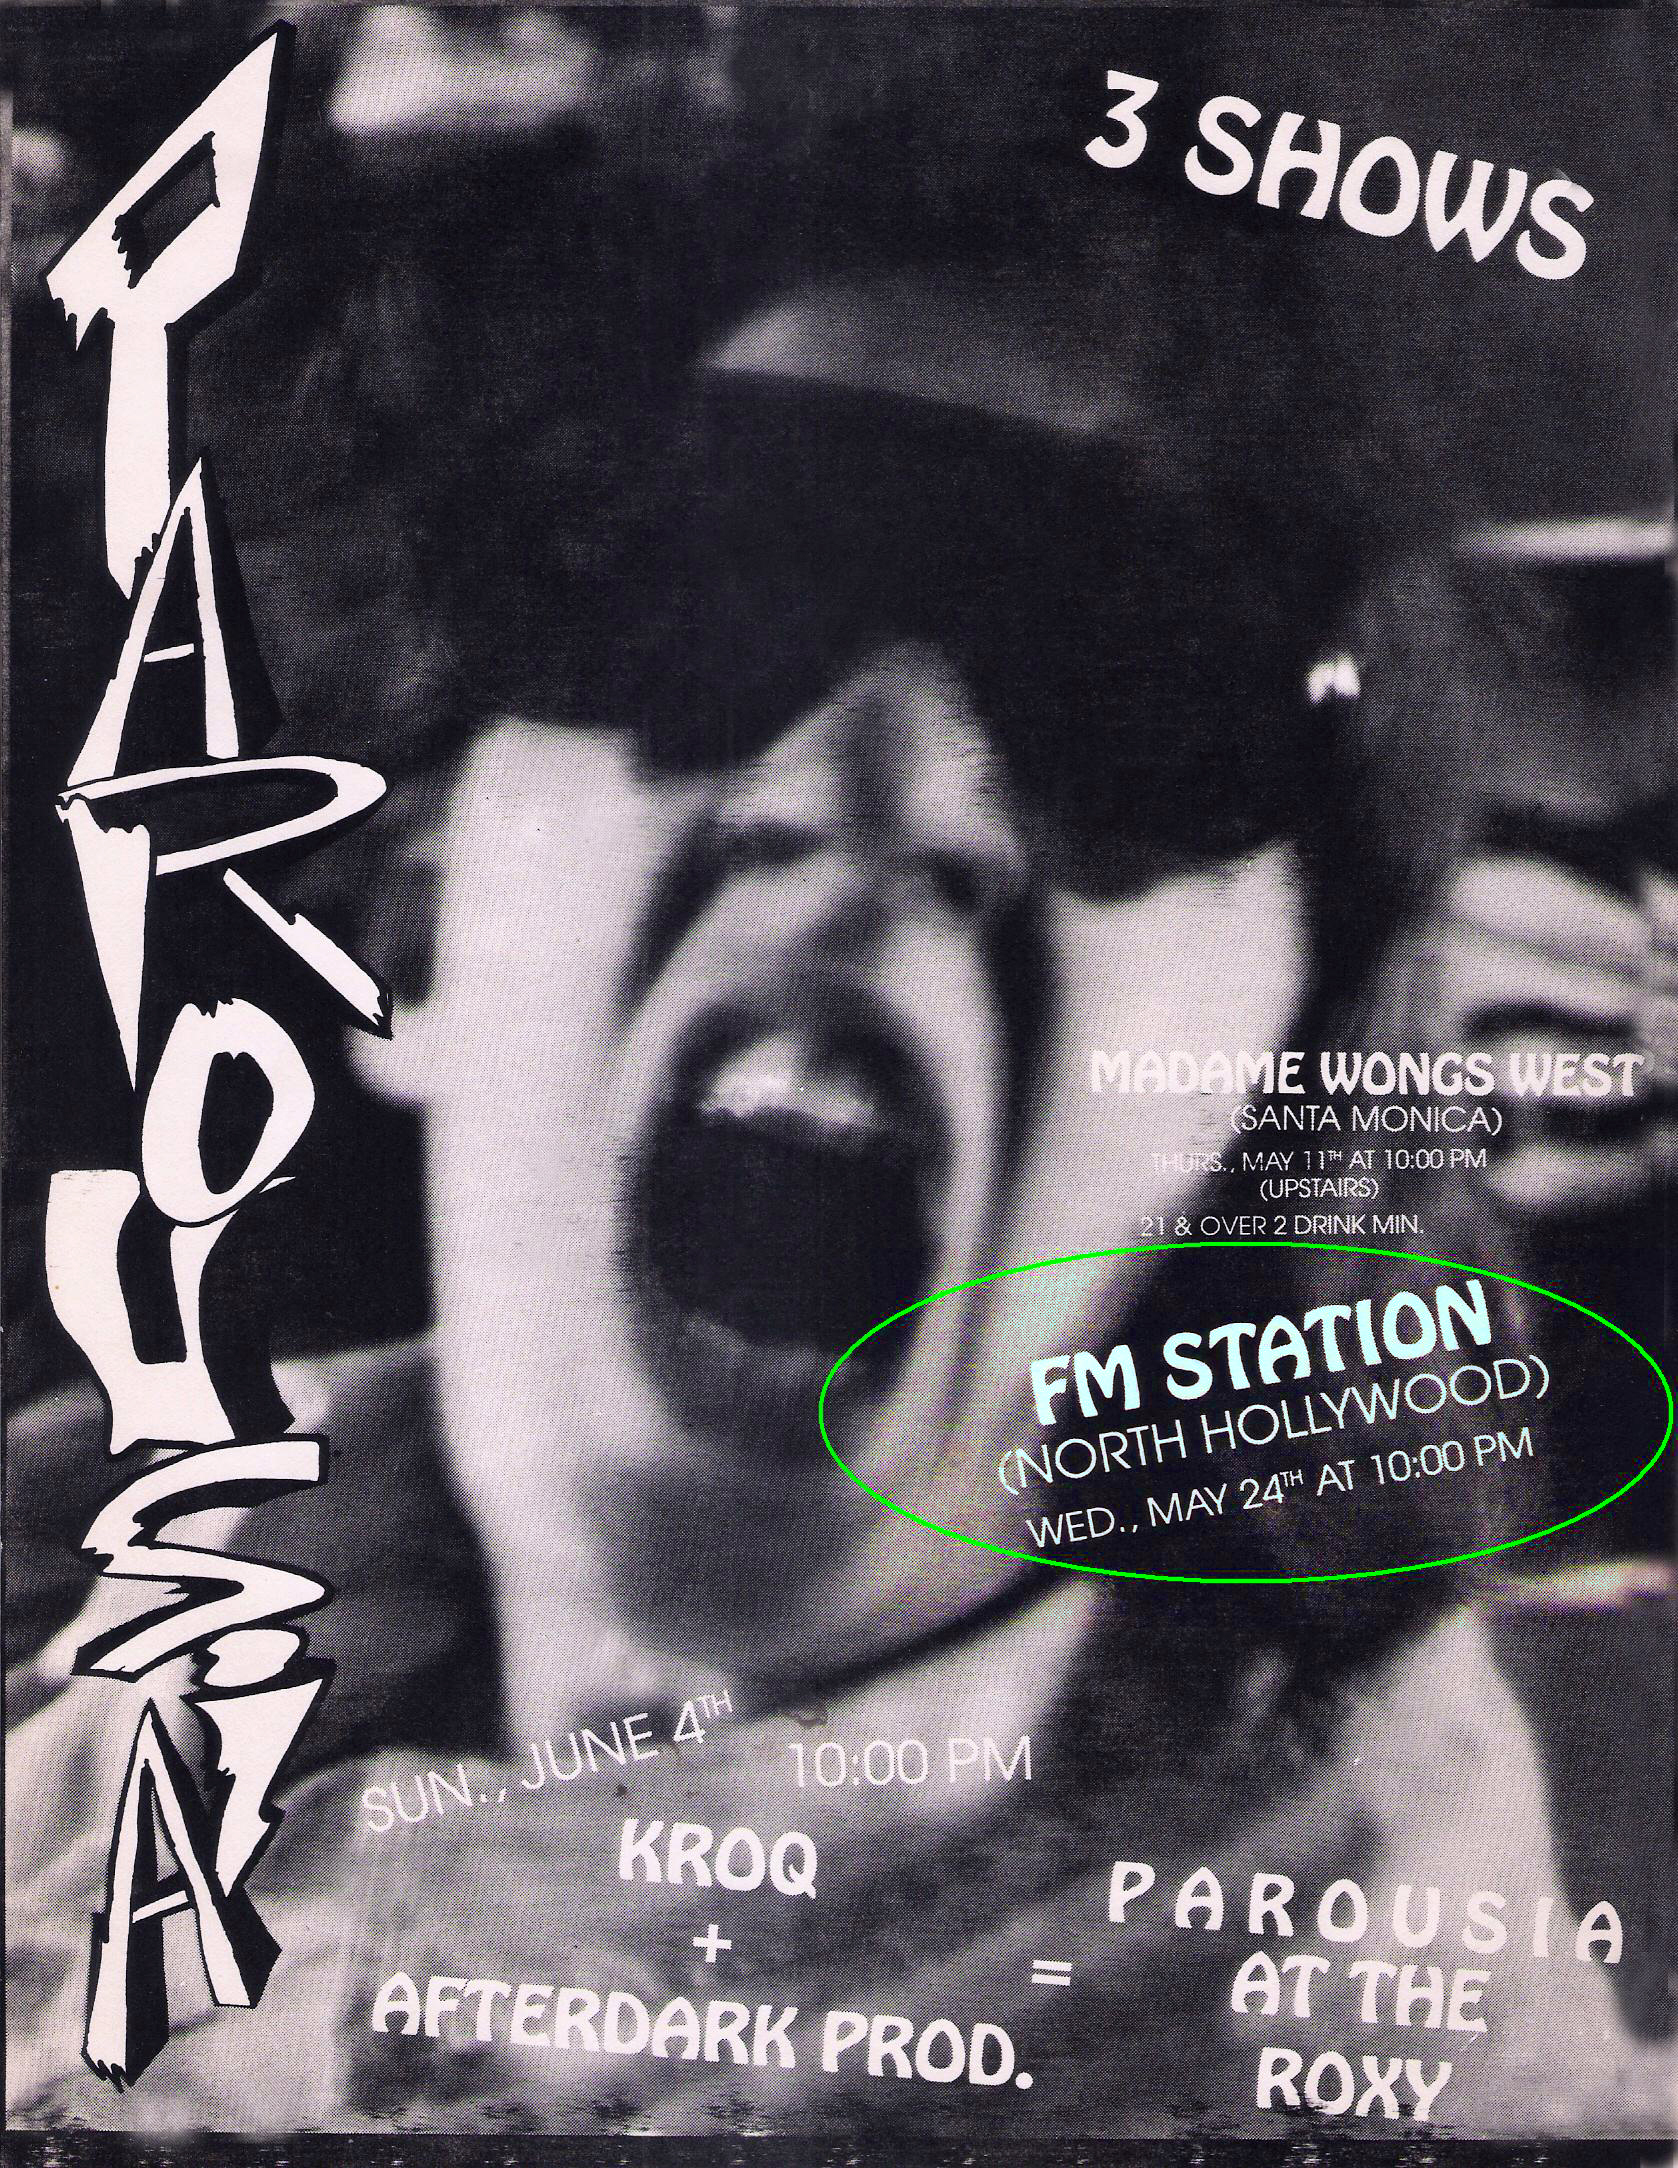 Parousia Flyer: F.M. Station Live show, March 24, 1989 (featuring Cheli Bremmer's face)